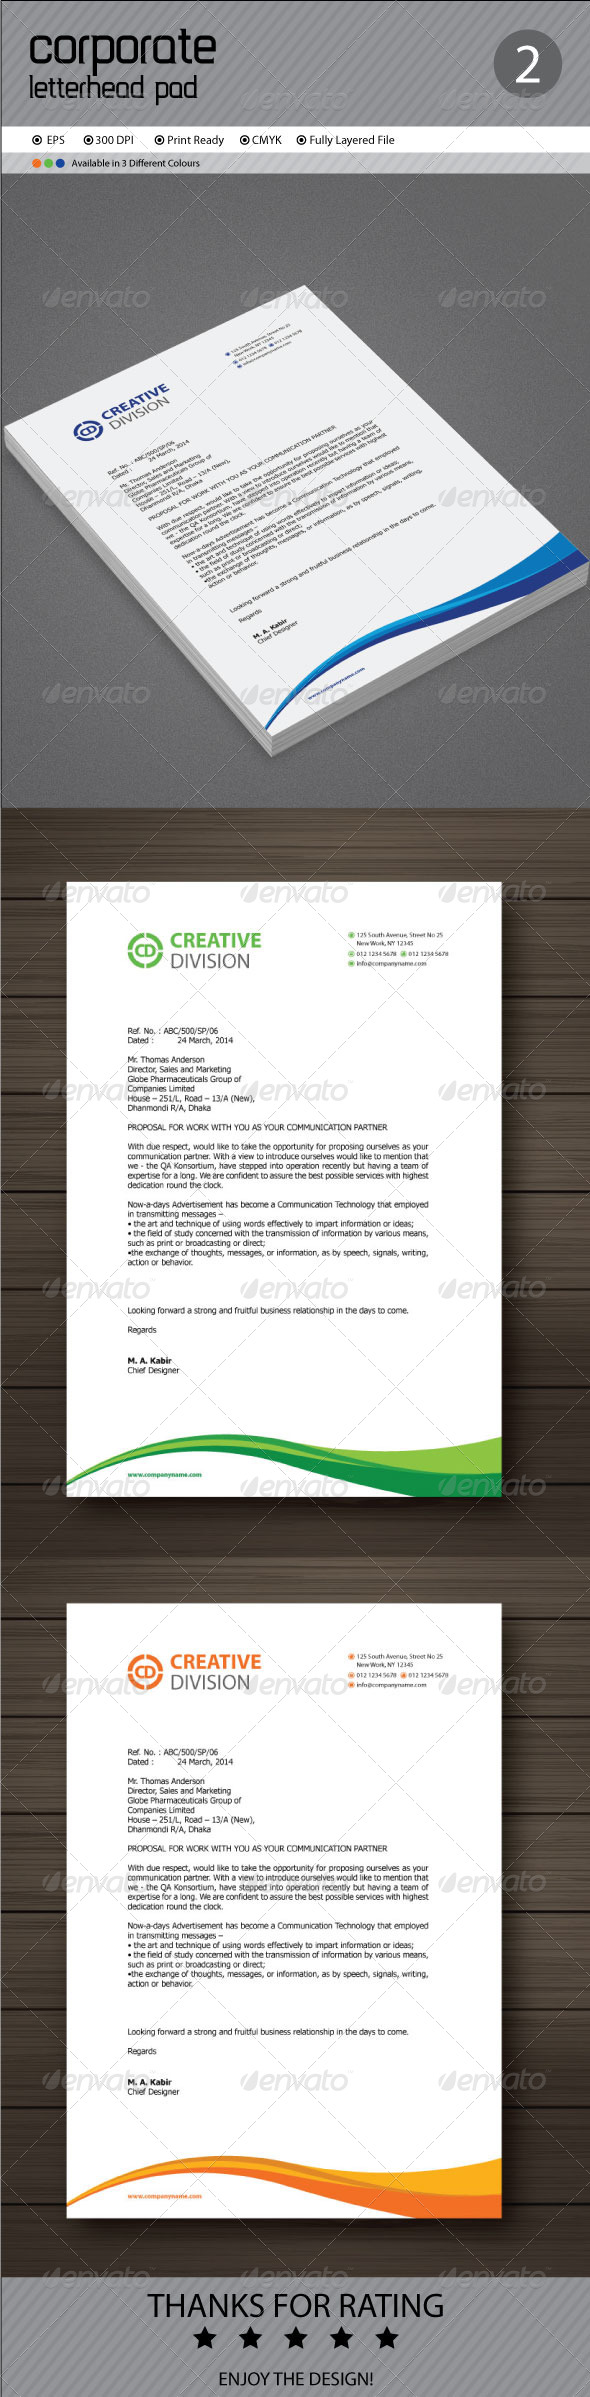 Corporate Letterhead Pad Template